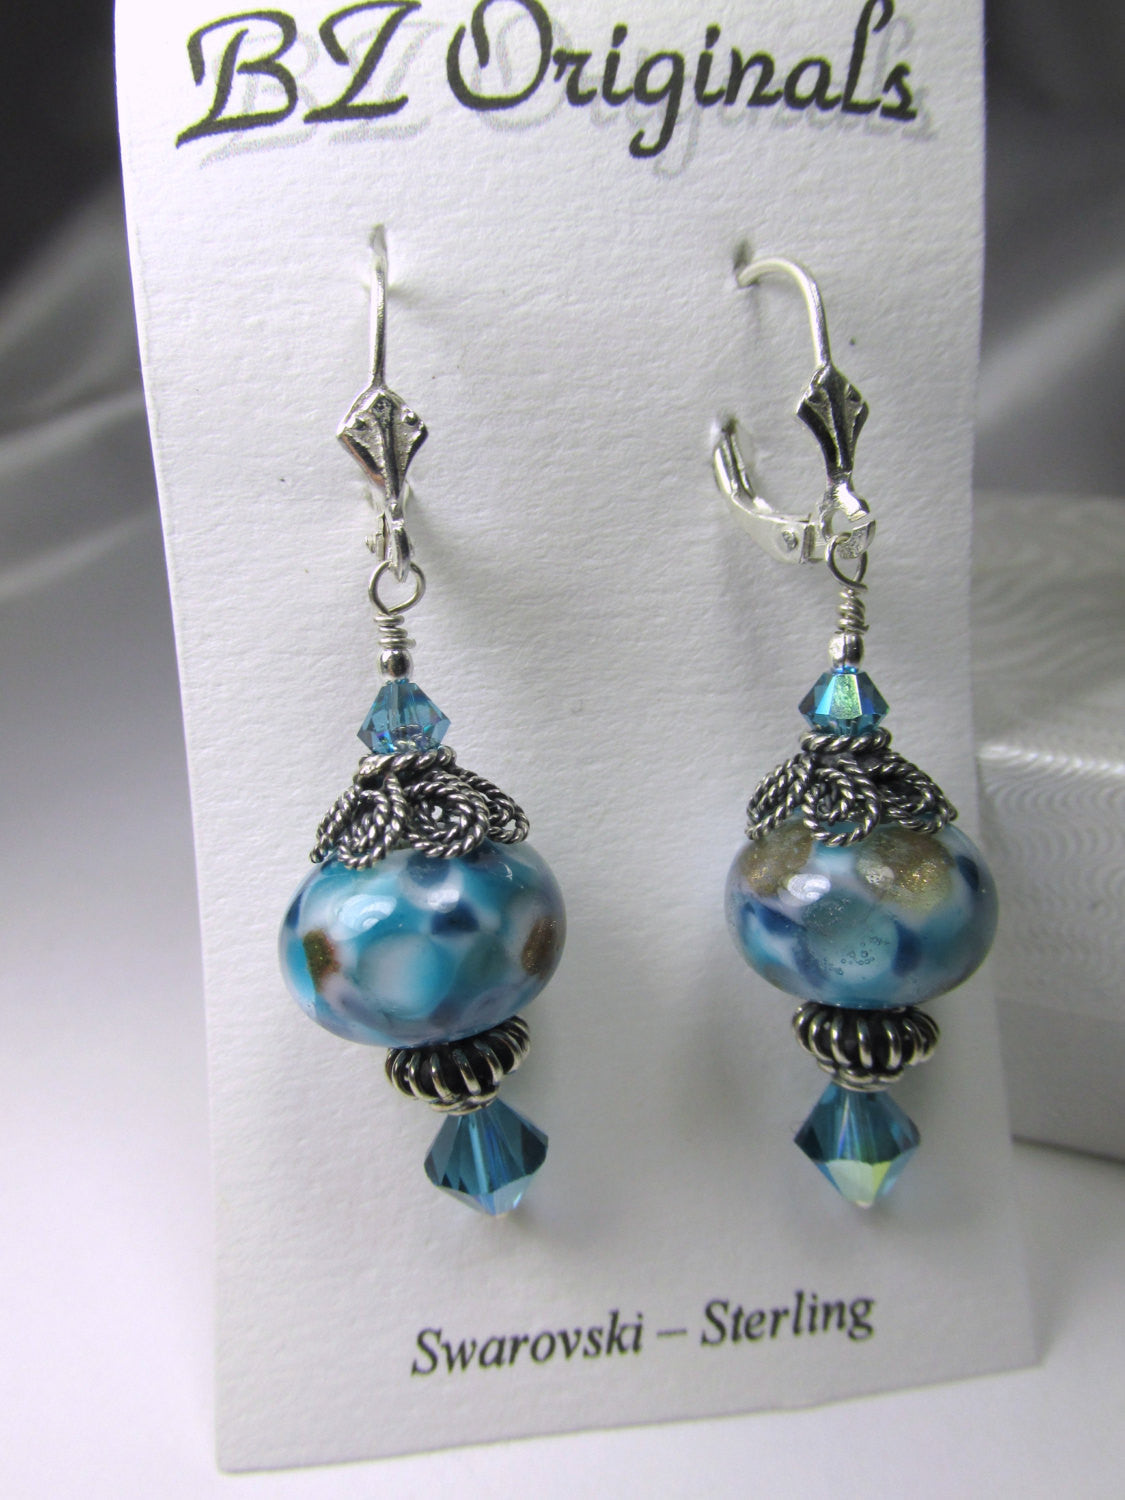 Blue Turquoise Lampwork Glass Earrings with Bali Sterling Silver findings and fine sterling silver leverback earring wires - Odyssey Creations